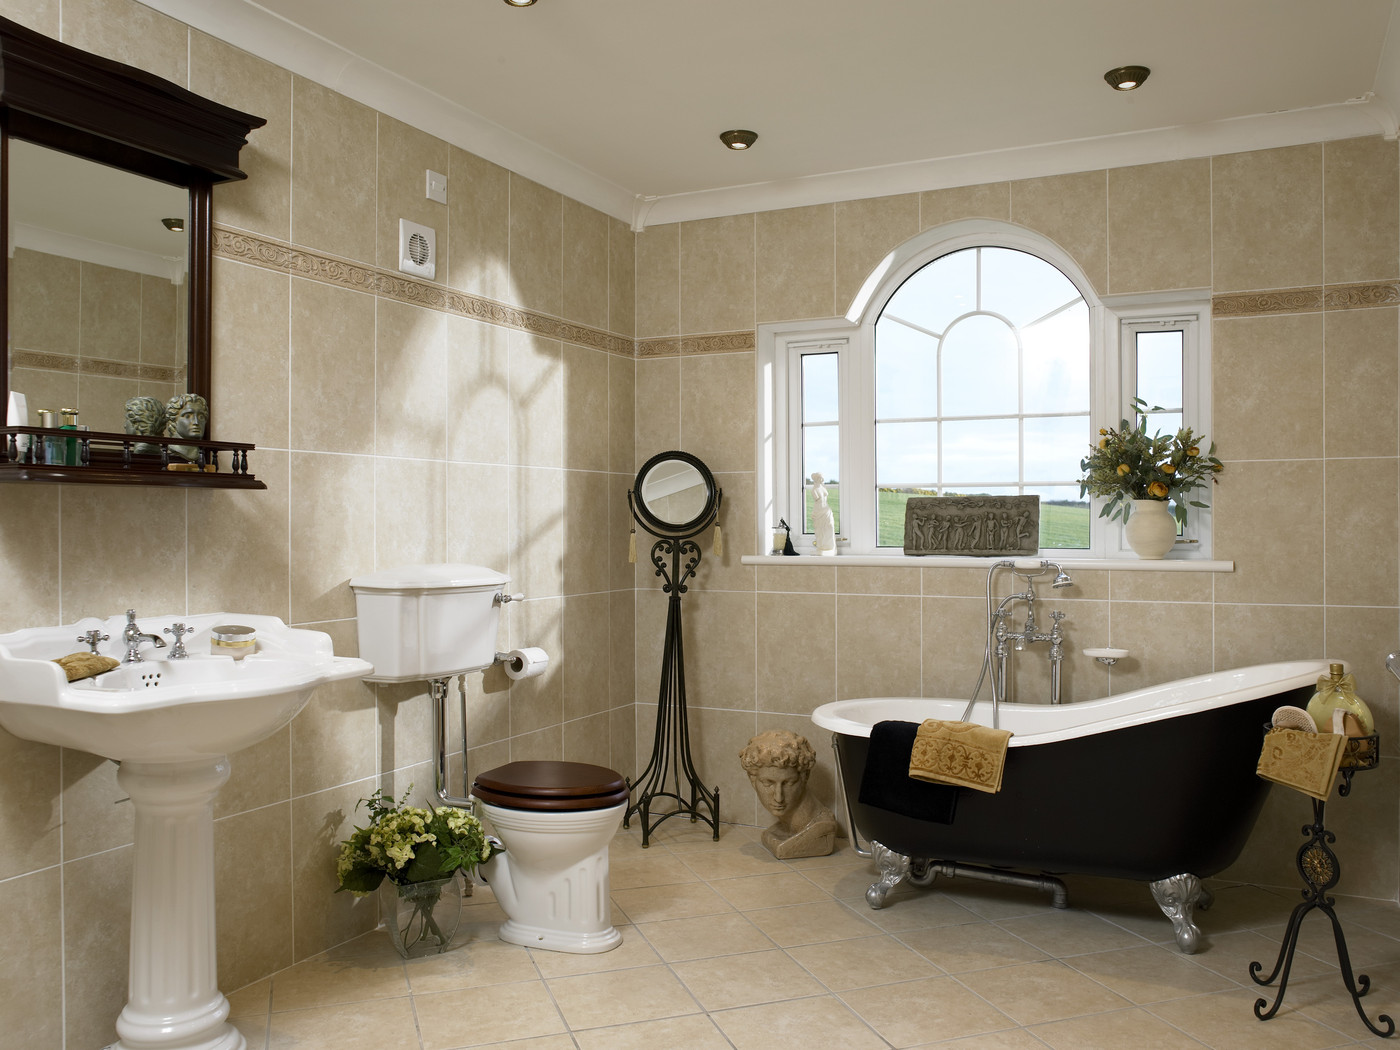 Freestanding roll top bath photos design ideas remodel for Victorian bathroom design ideas